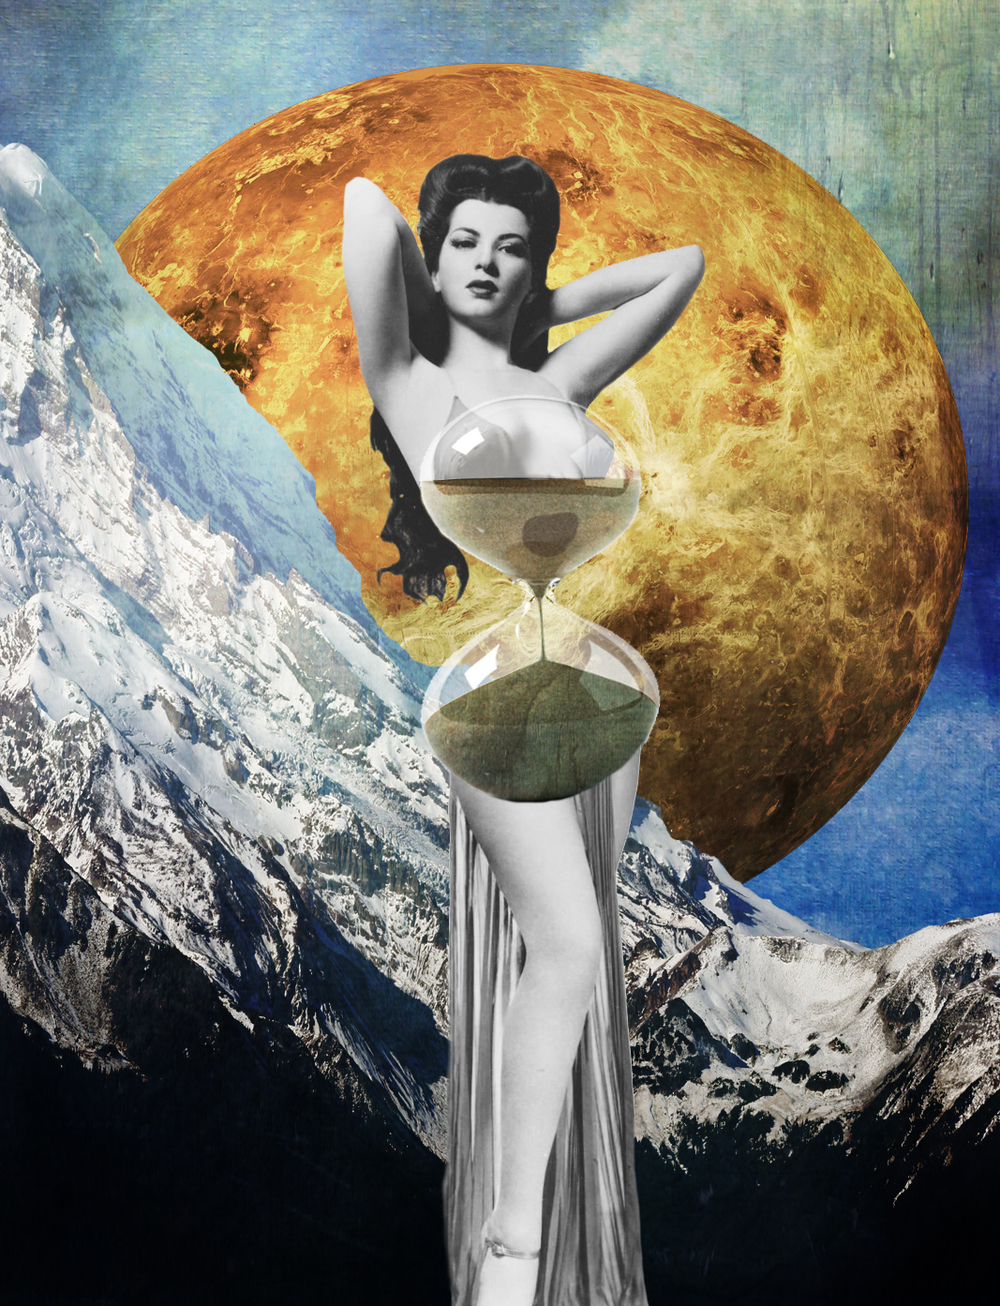 Jenkins, Cheyenne. Hourglass. 2015. Digital Collage. Montreal, Quebec